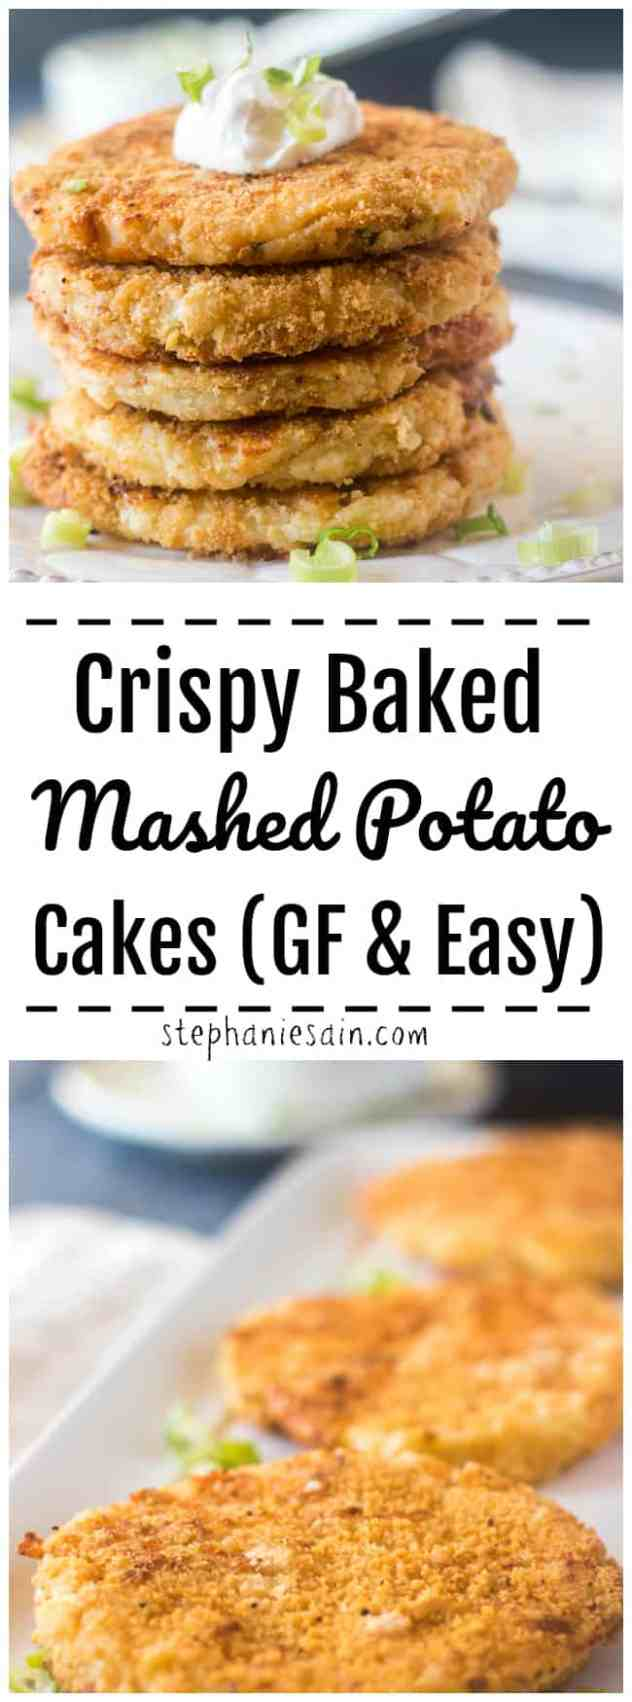 These Mashed Potato Cakes are oven baked and crispy, cheesy and perfect as a side to any meal. Also great as snack or appetizer. Only 4 ingredients needed to make this super easy delicious potato cakes. Gluten Free & Easy.